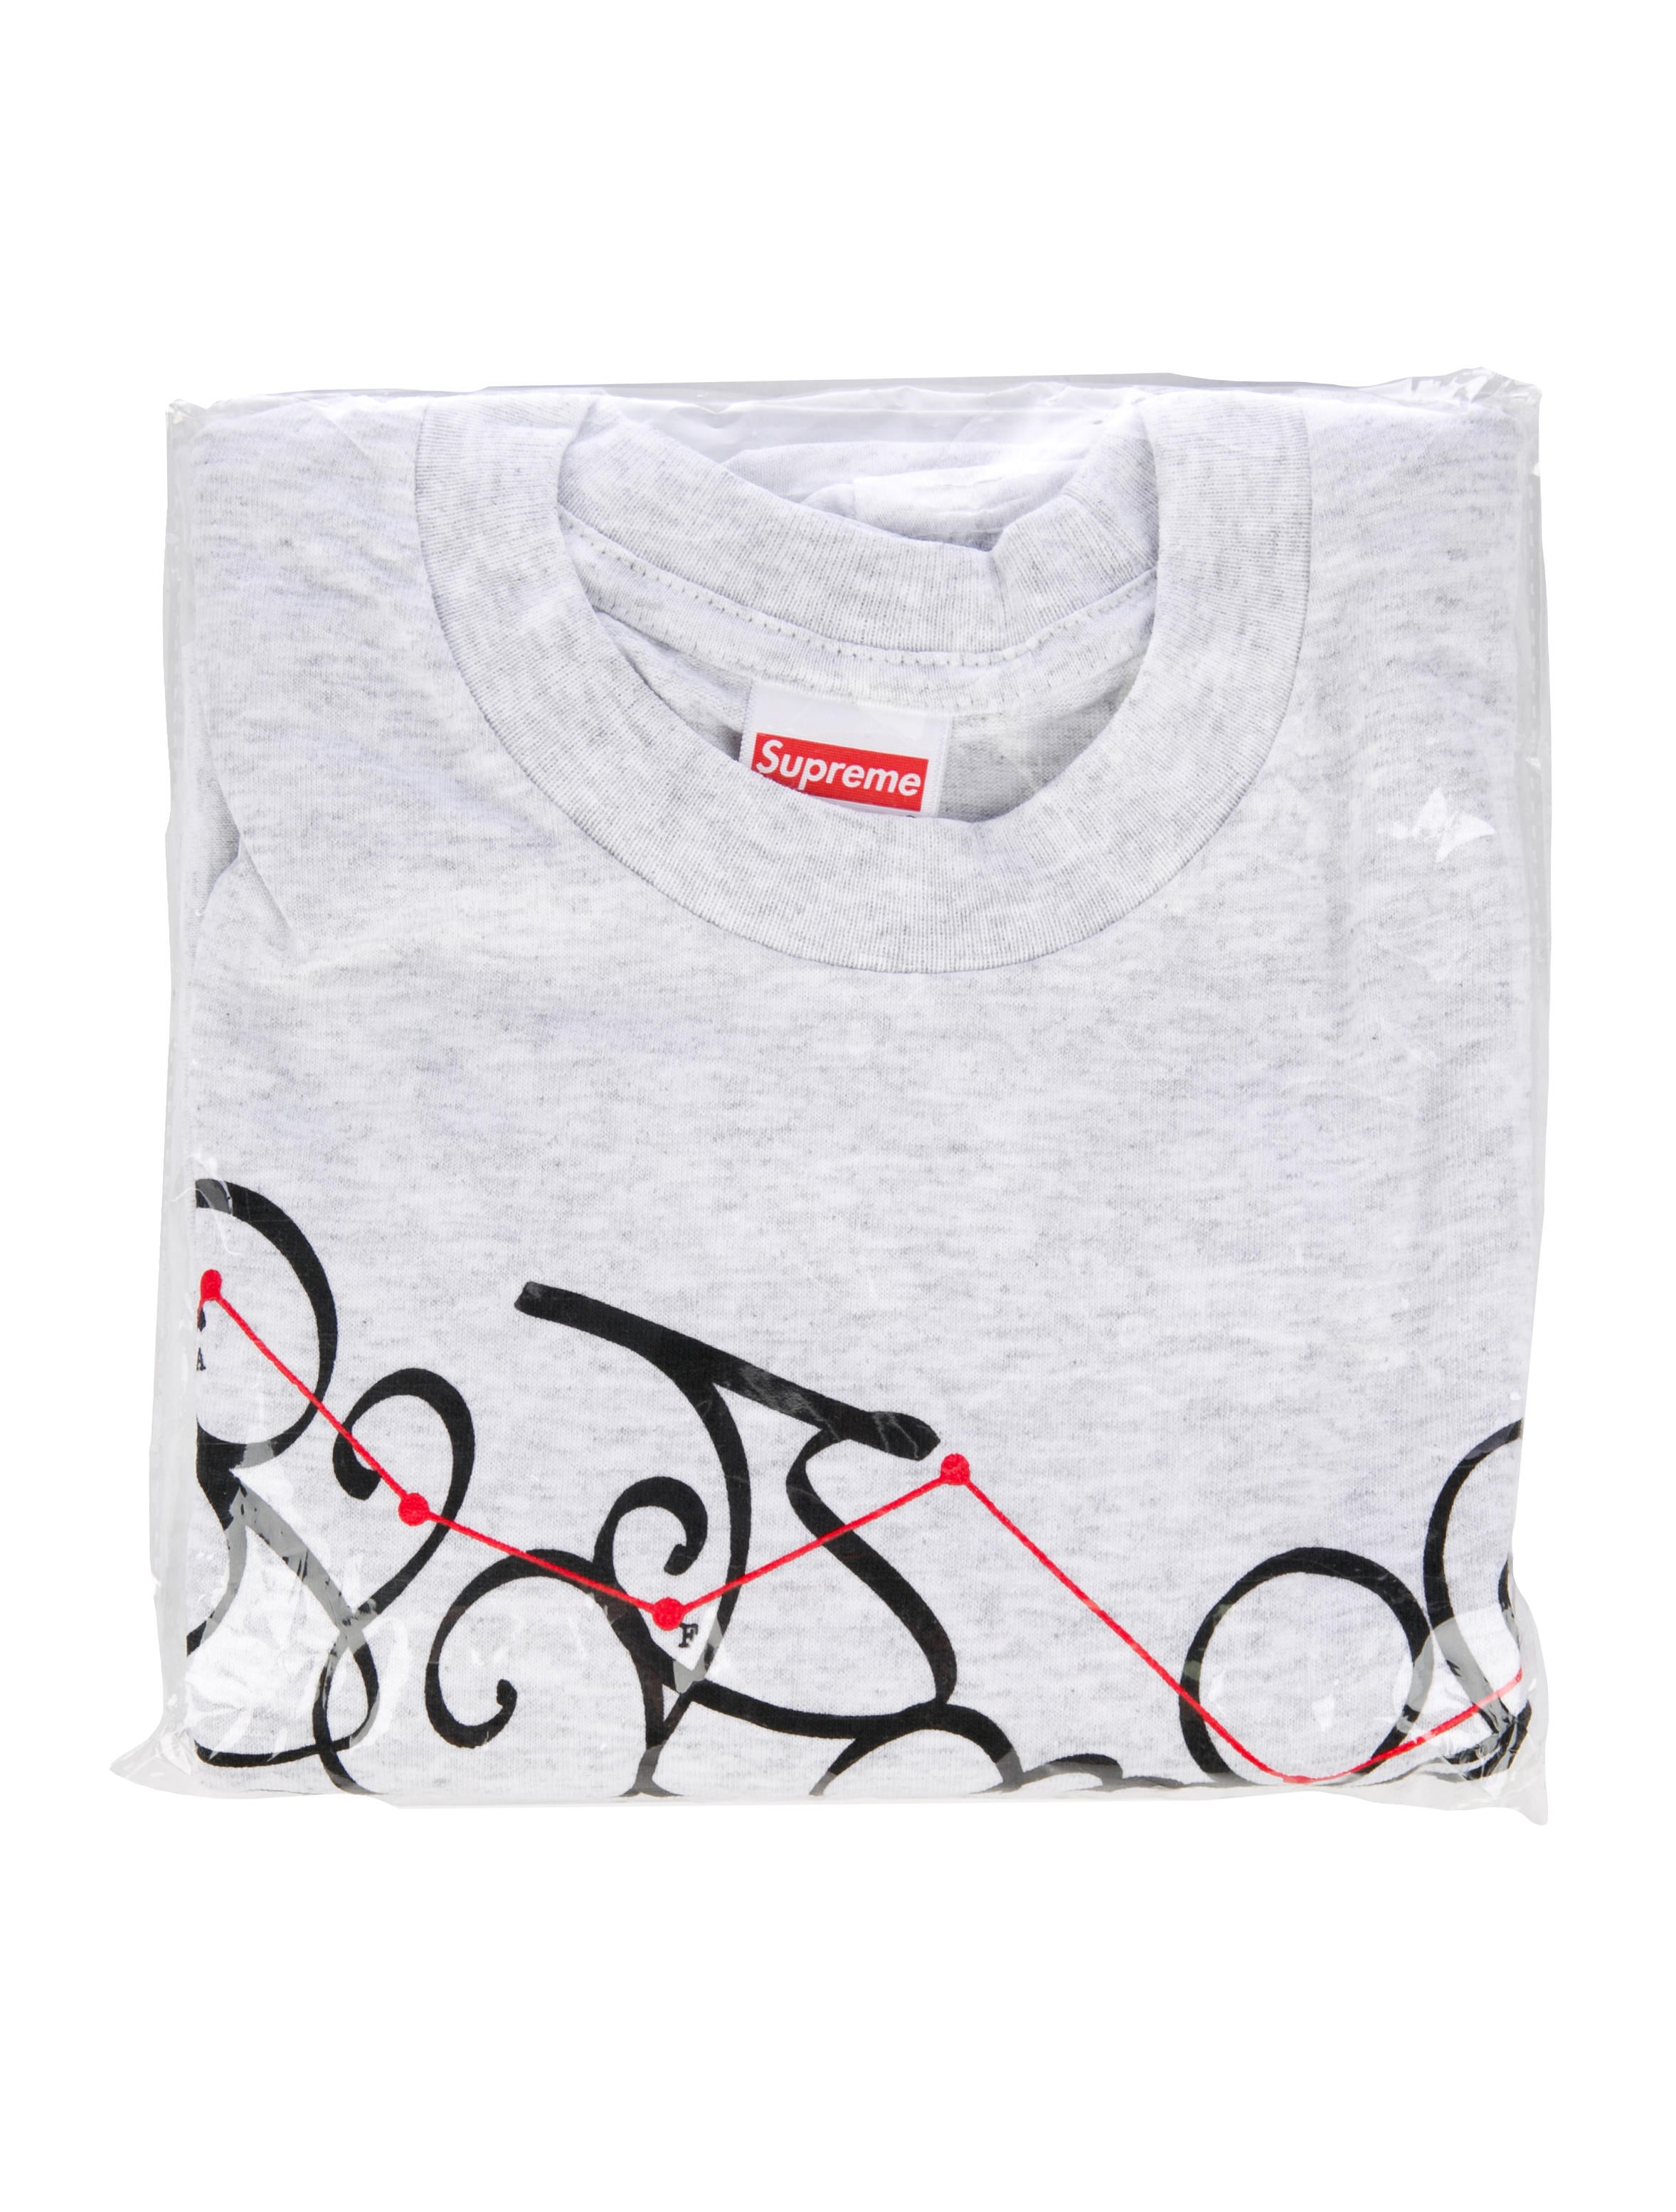 0a83def8fab8 Supreme 2018 System T-Shirt w/ Tags - Clothing - WSPME27042 | The ...